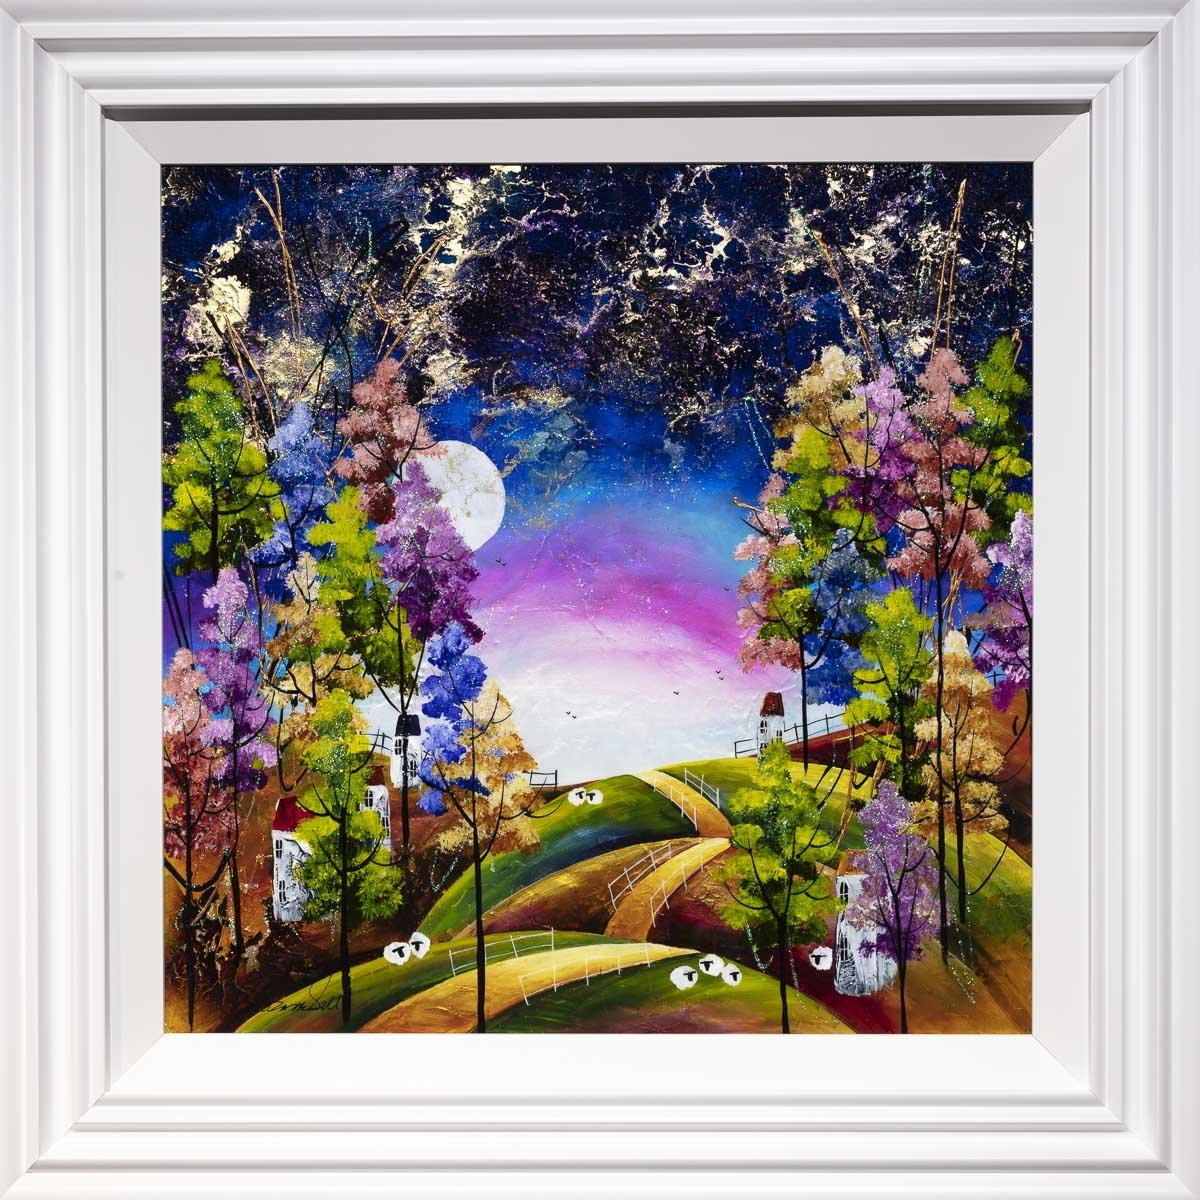 Under the Moon - Original Rozanne Bell Framed